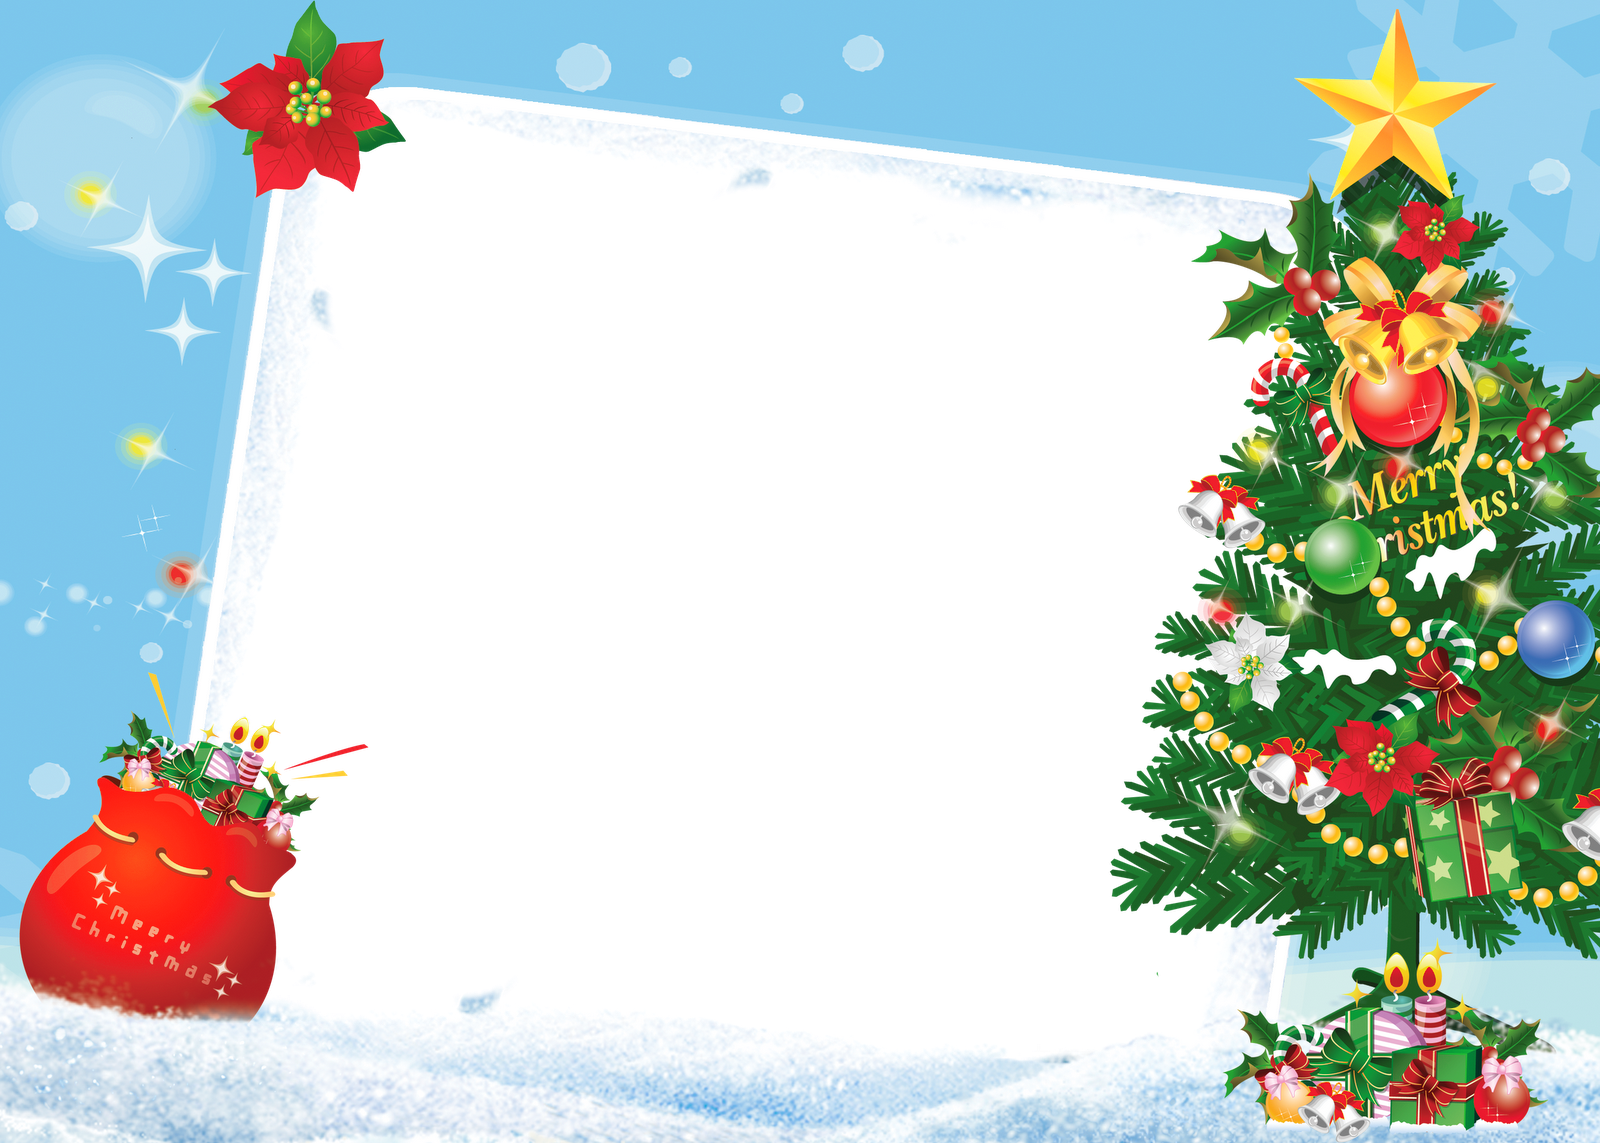 Christmas frames and borders png. Merry frame with tree